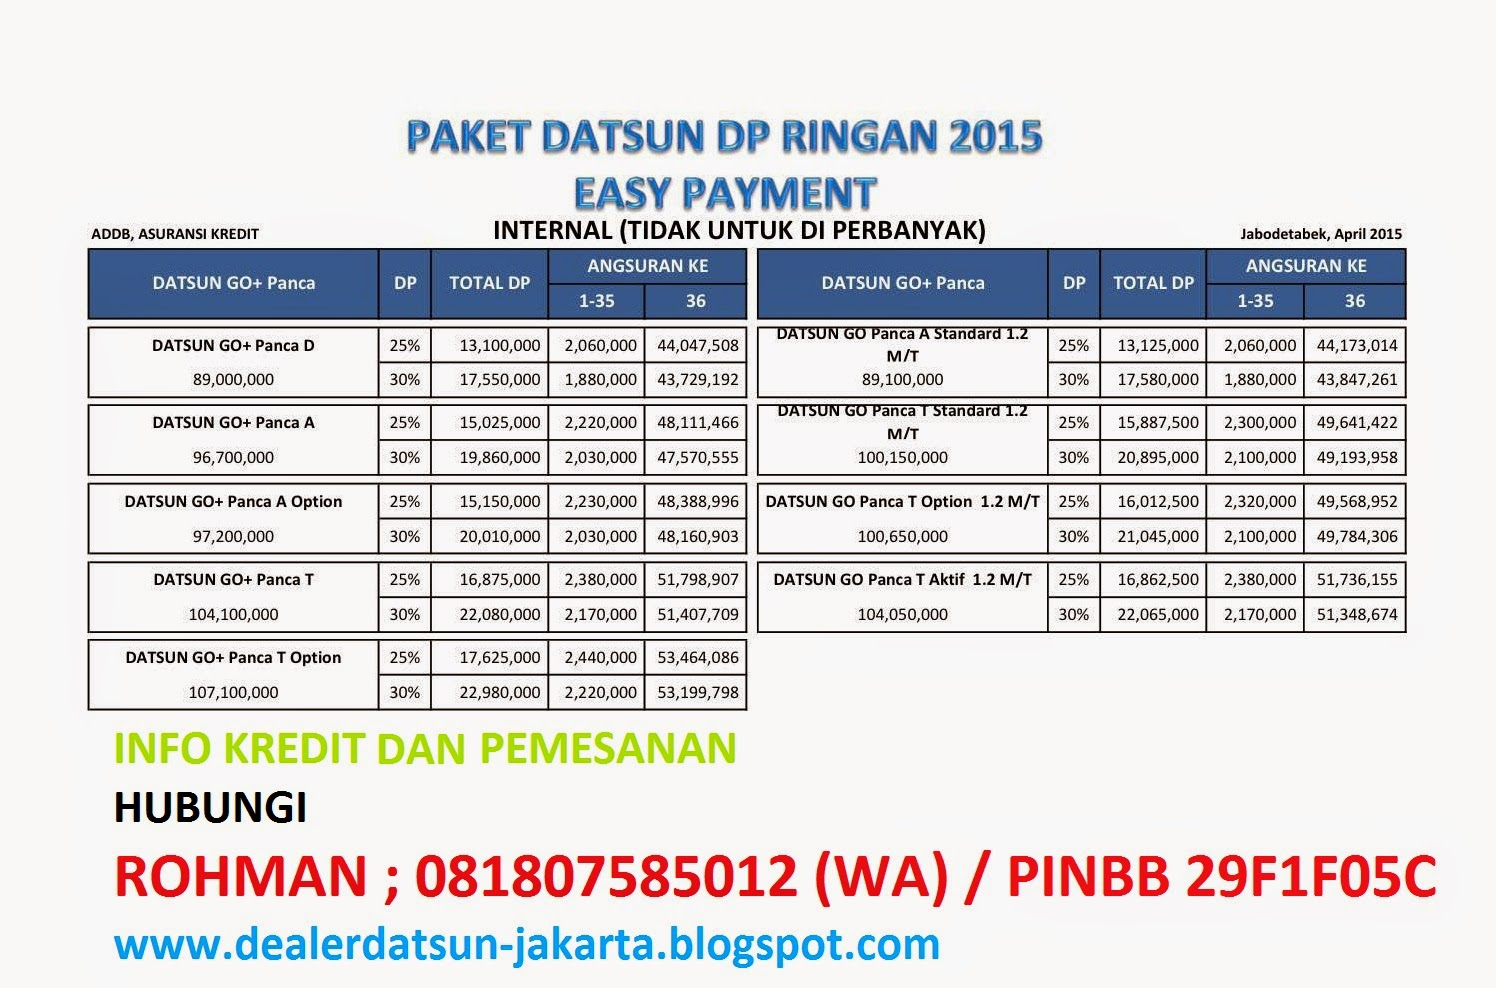 eazy payment datsun finance